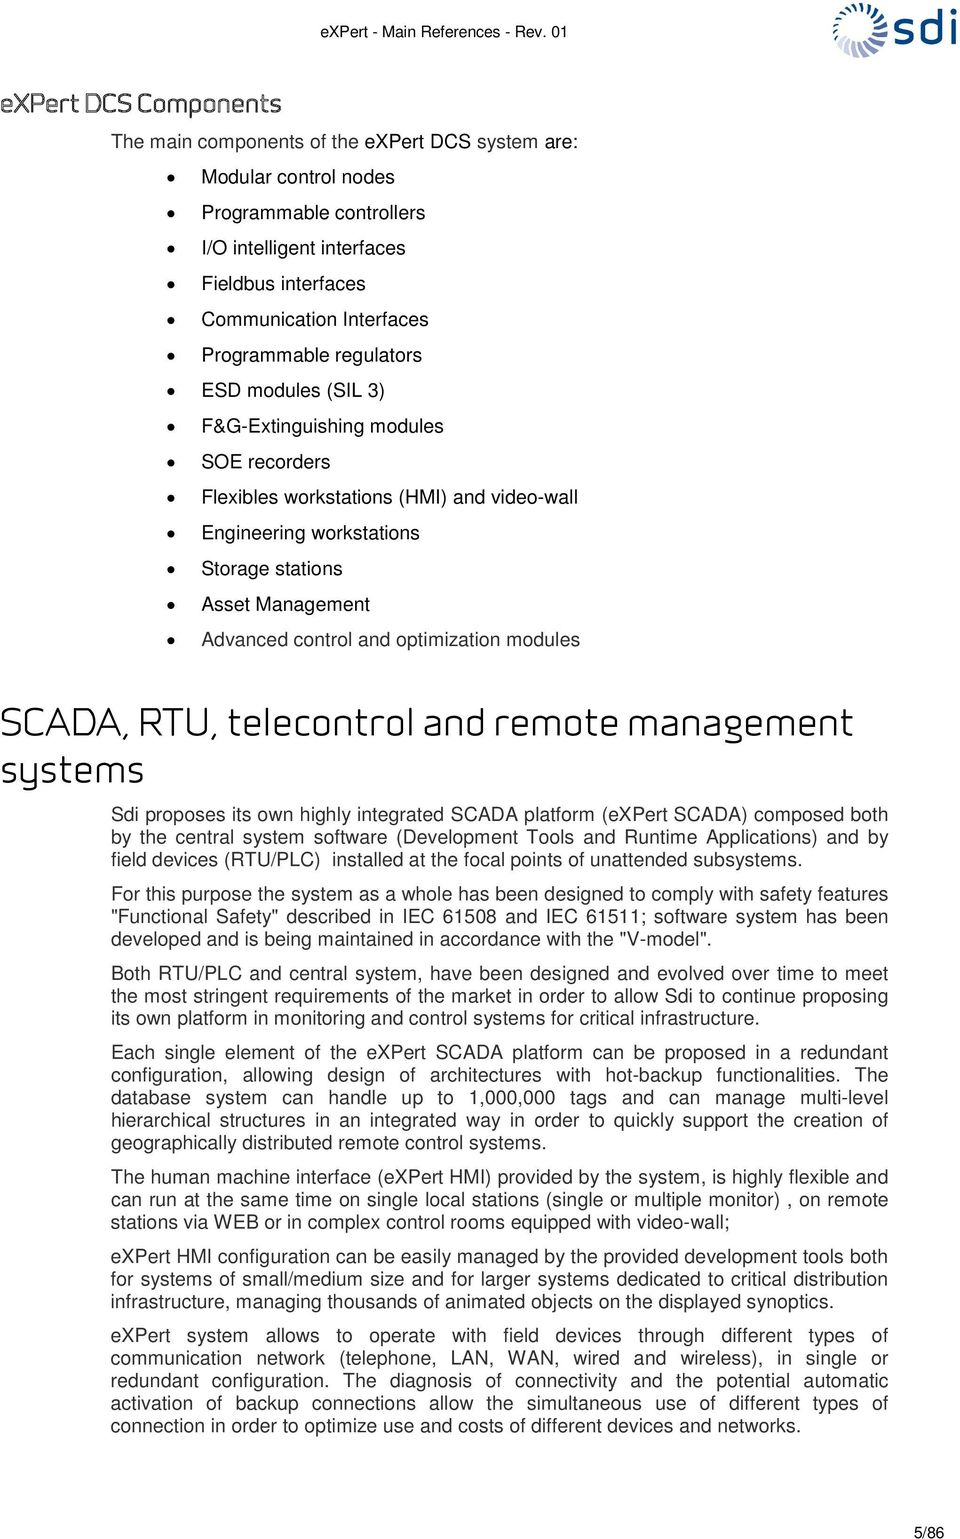 control and optimization modules SCADA, RTU, telecontrol and remote management systems Sdi proposes its own highly integrated SCADA platform (expert SCADA) composed both by the central system